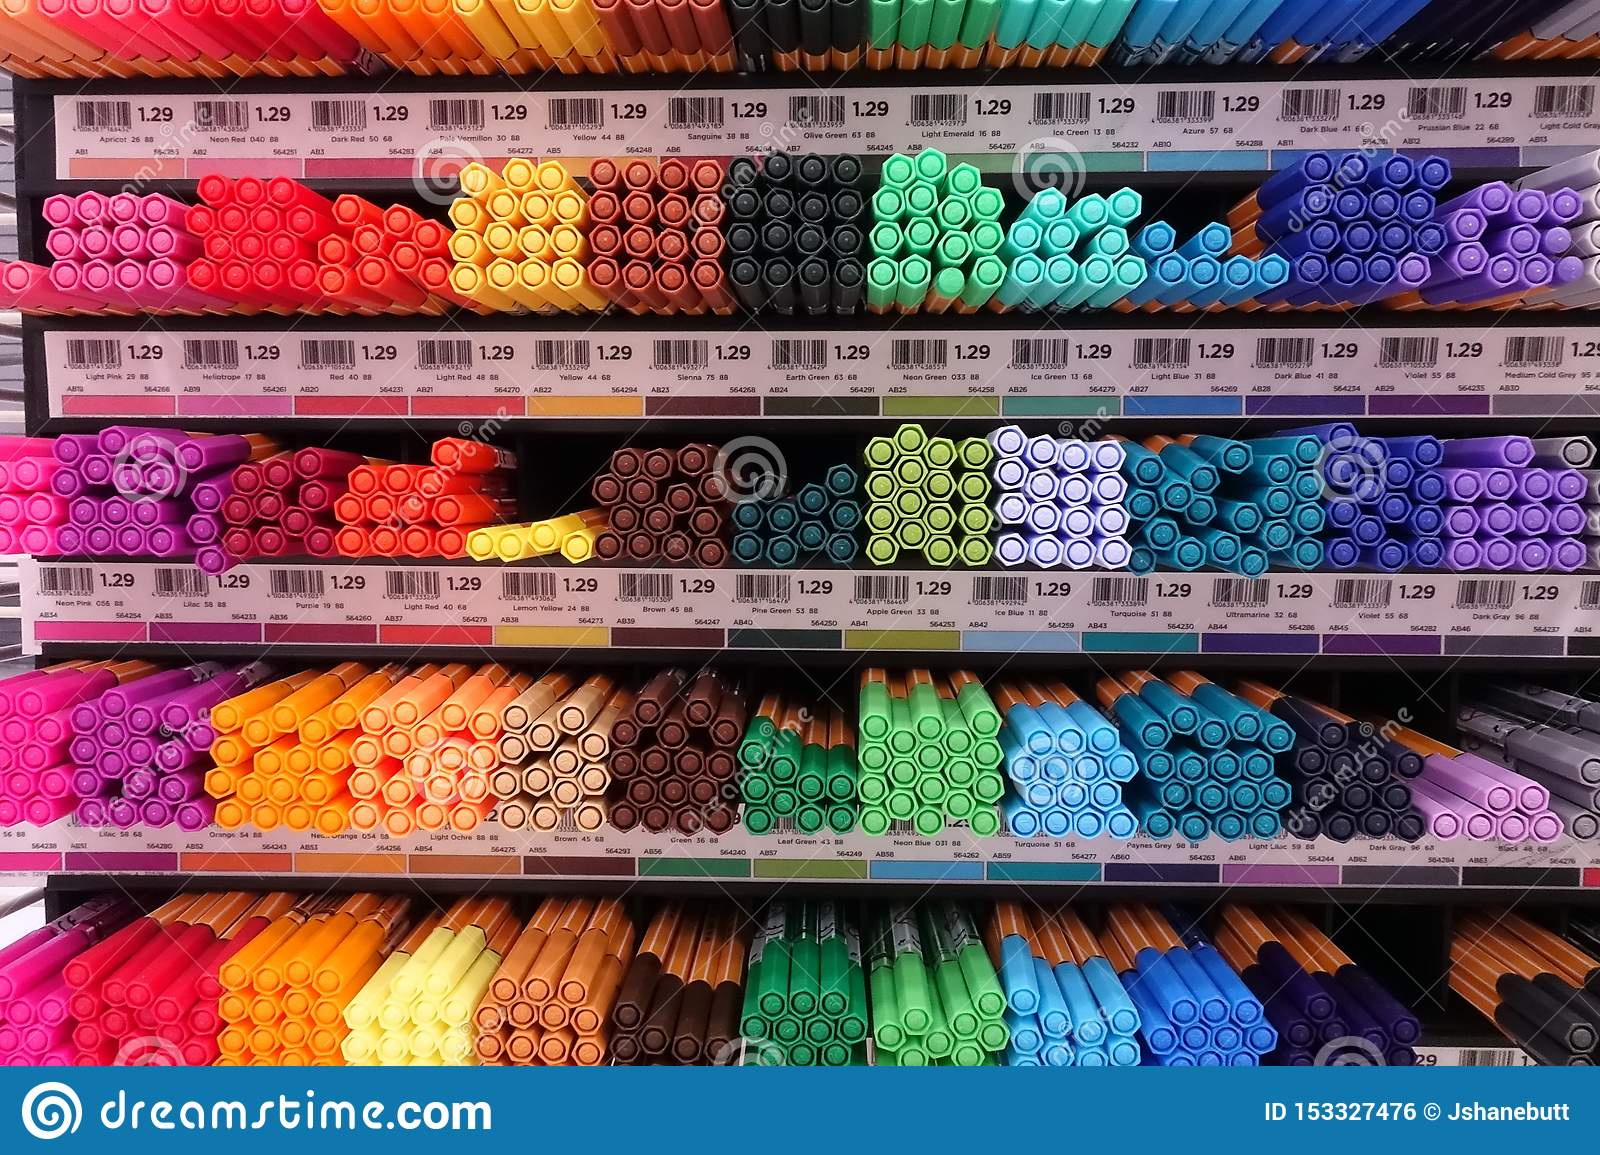 School Supplies at a local retail store